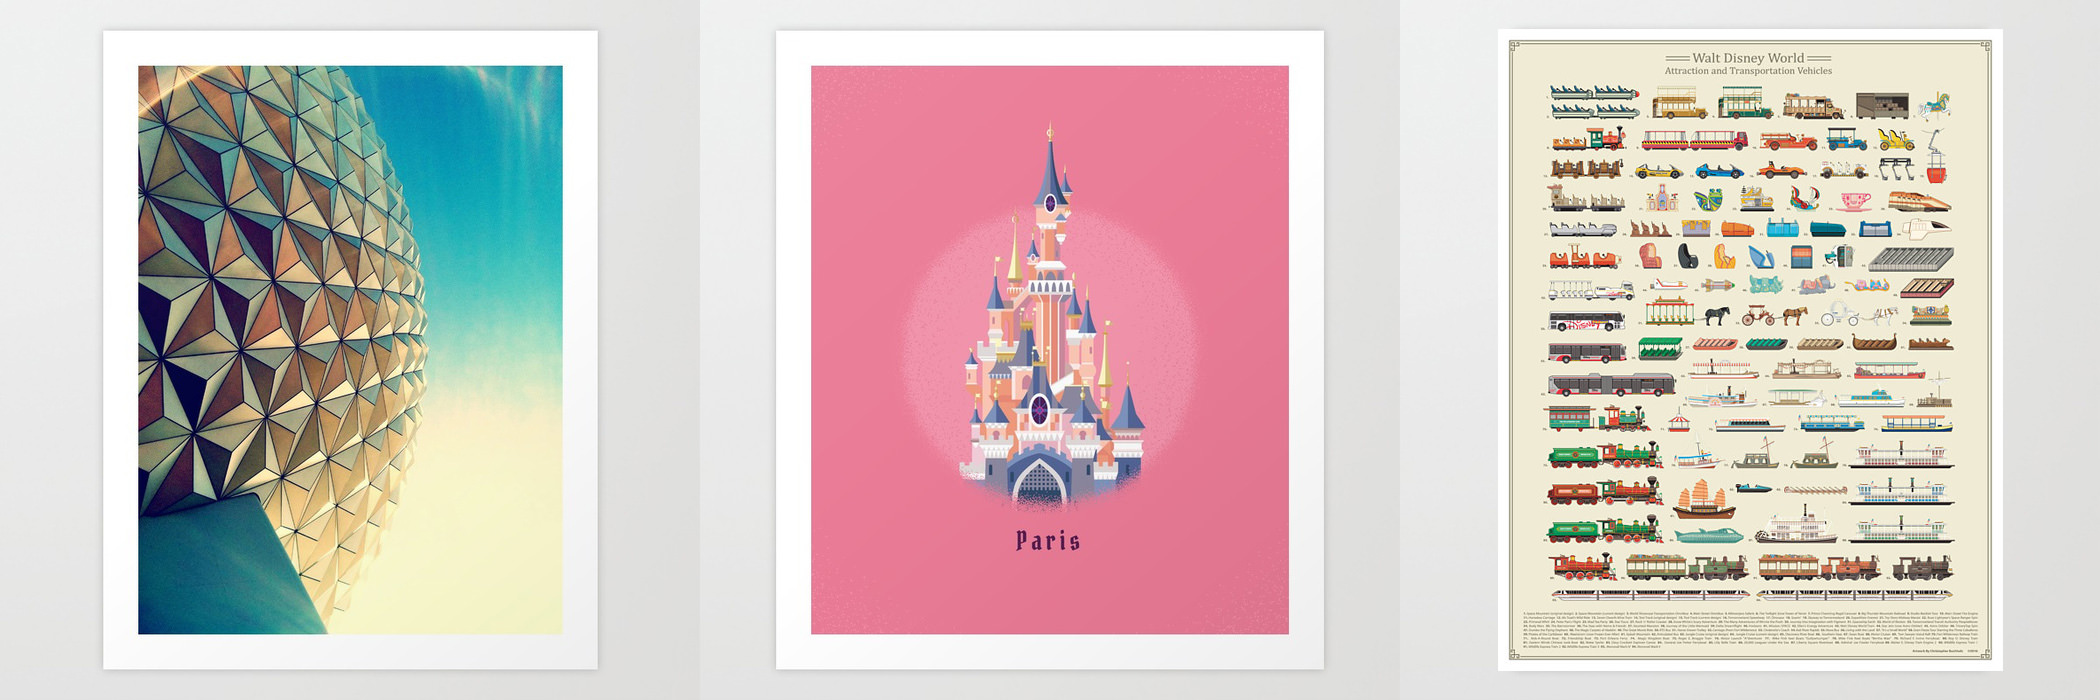 DISNEY ART HYPE